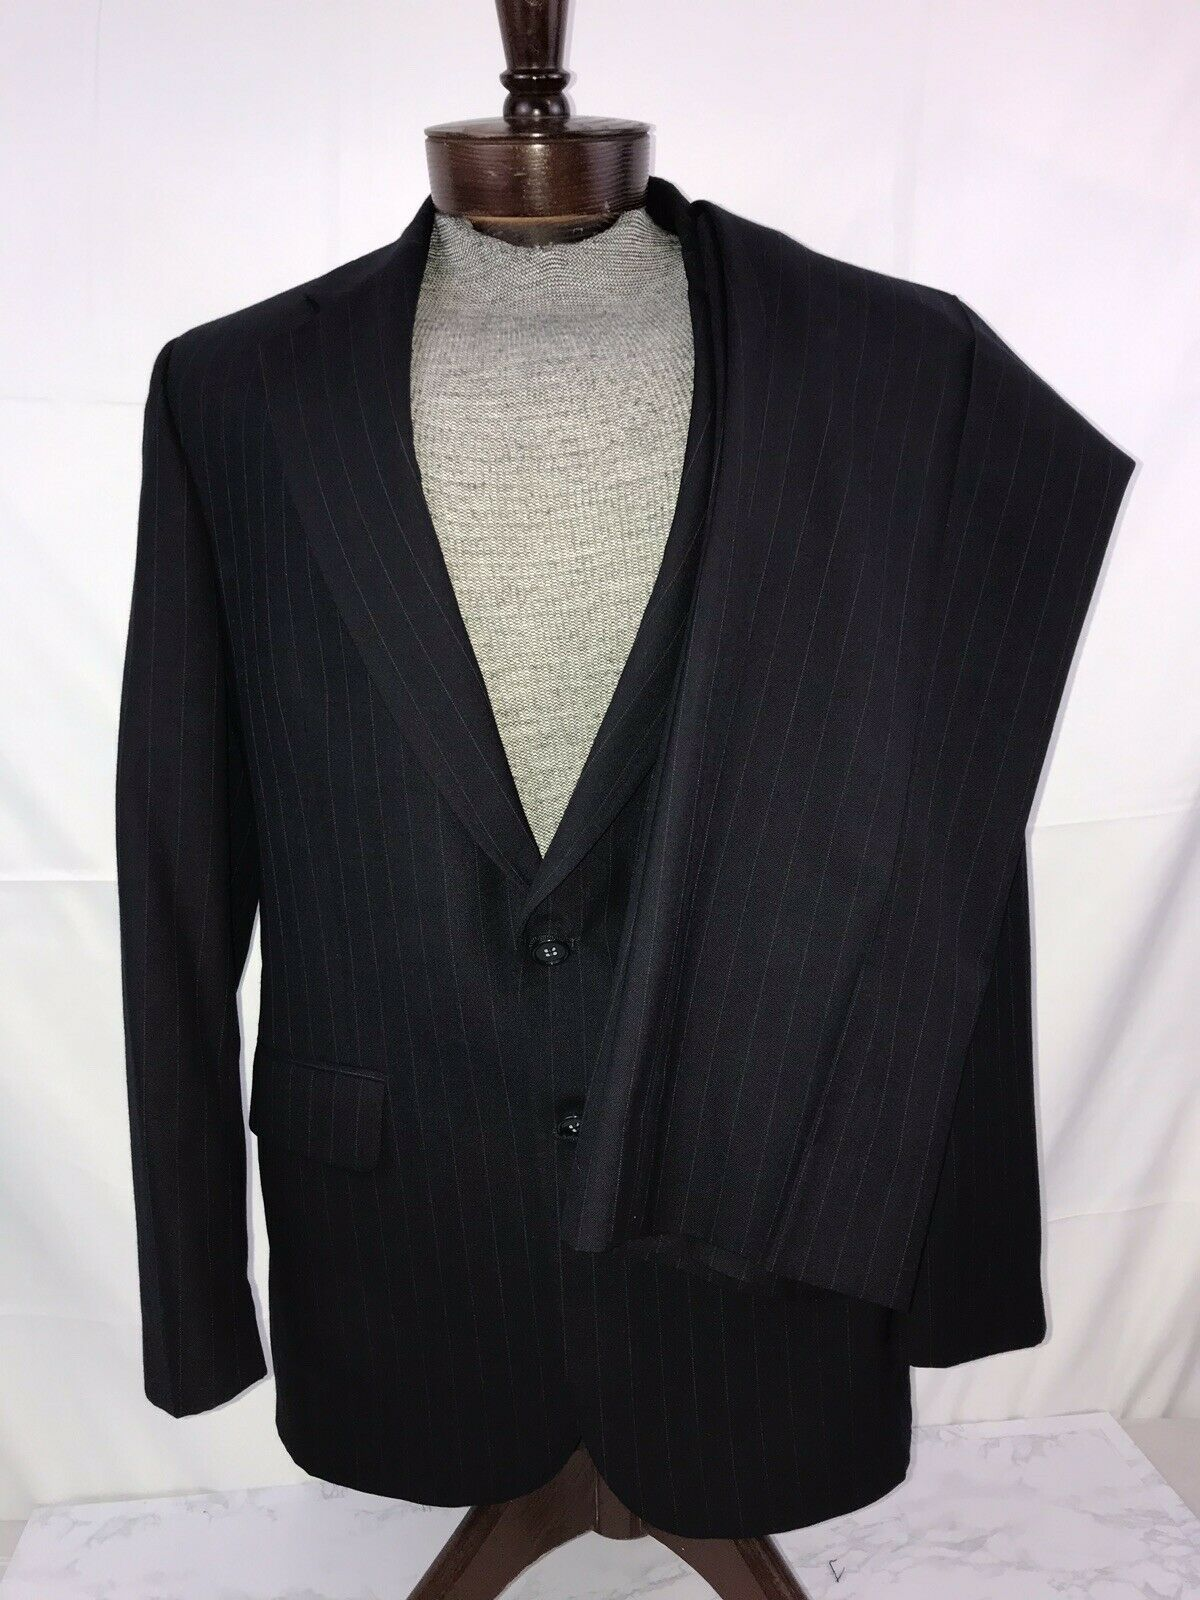 Botany 500 Couture 100% Wool Suit Men's Navy bluee Pinstripe 40R 34X30 Pants